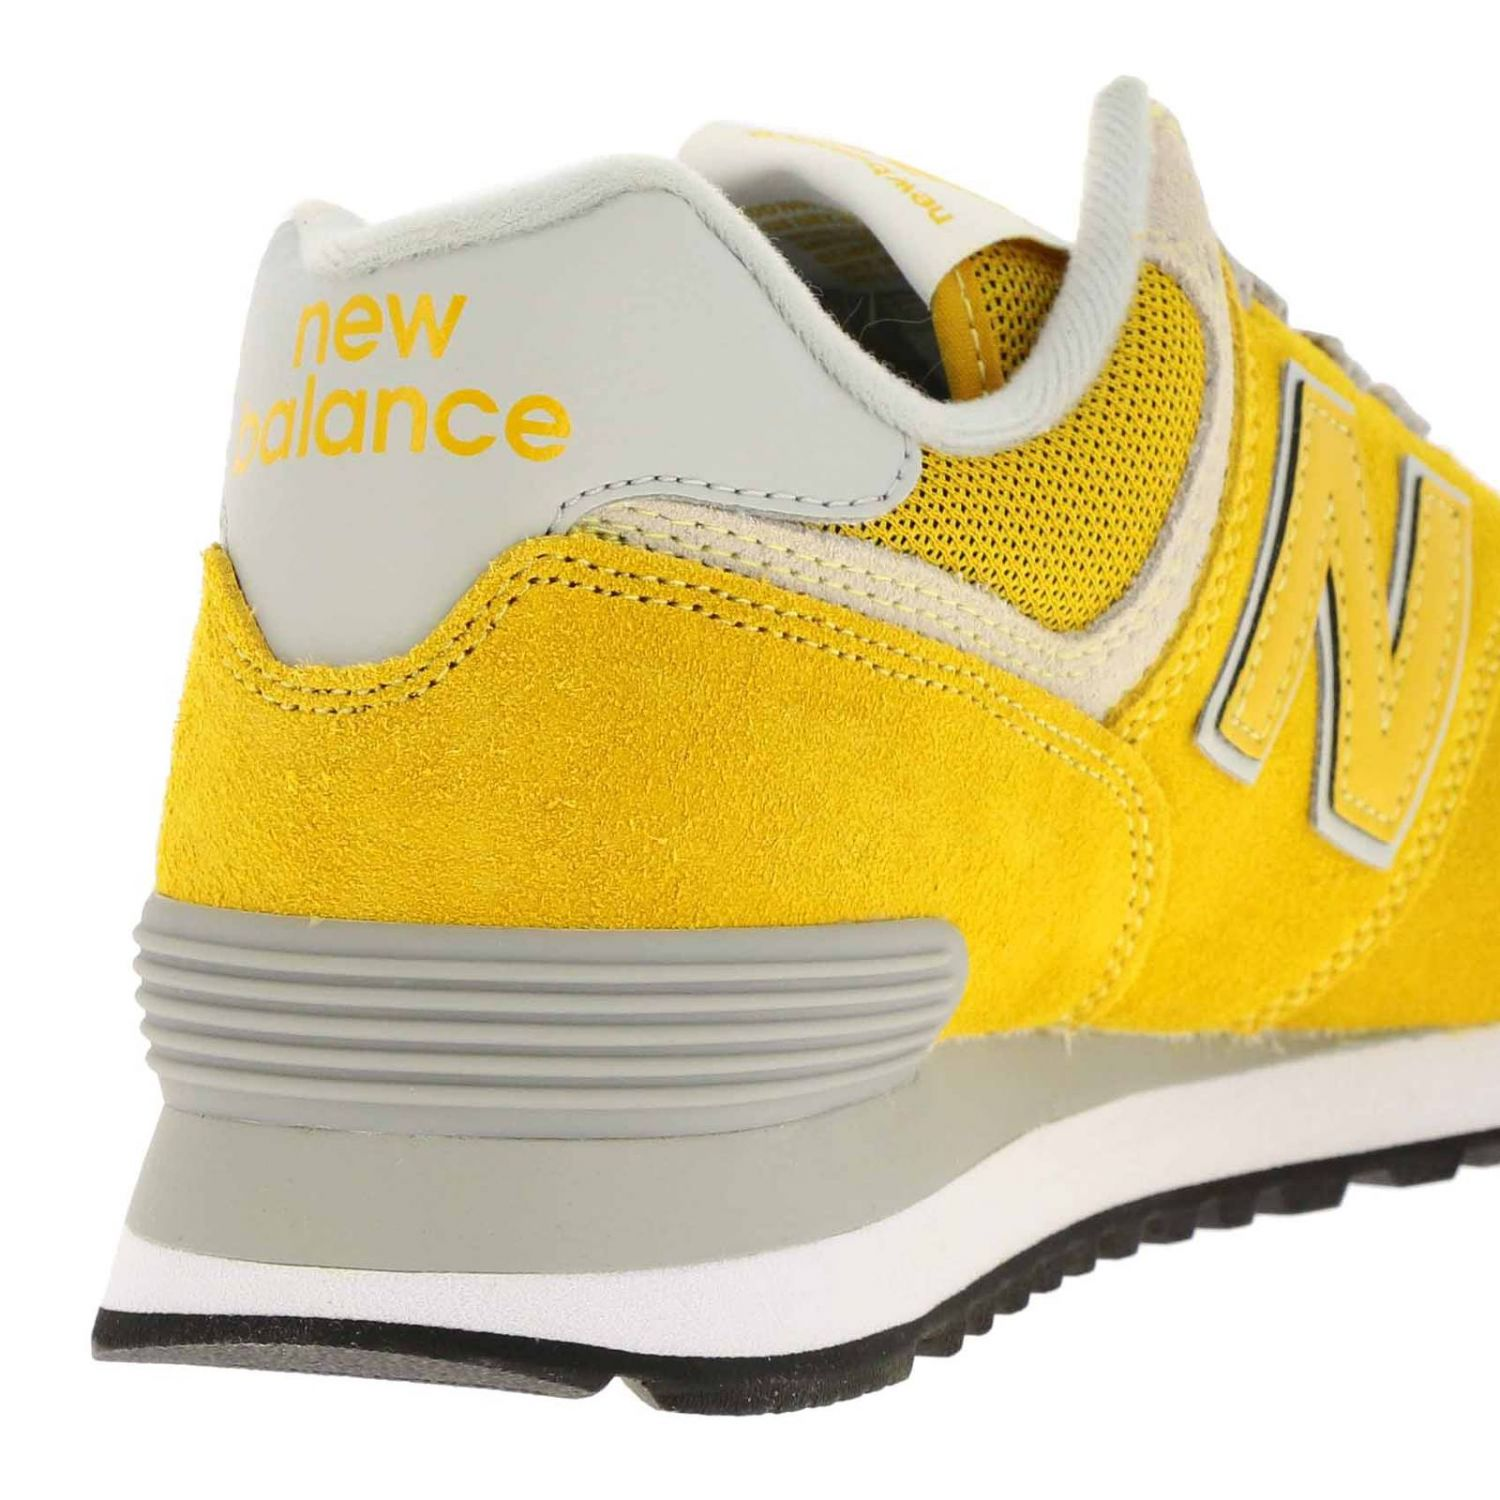 New Balance Outlet: Chaussures homme | Baskets New Balance Homme ...